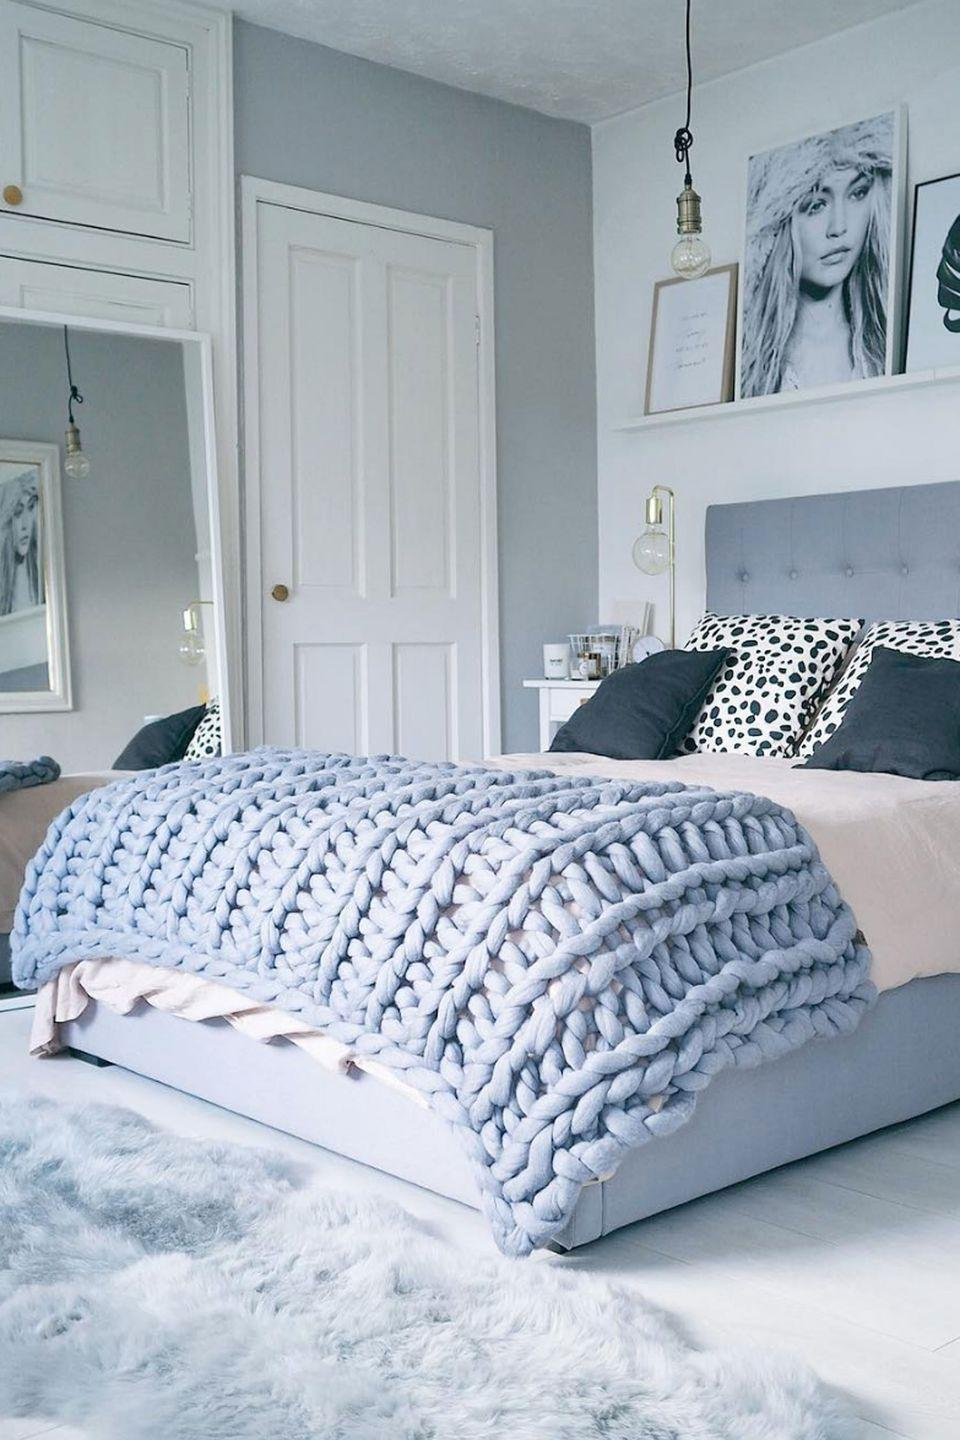 """<p><a href=""""https://www.countryliving.com/diy-crafts/a40078/how-to-make-large-knit-blanket/"""" rel=""""nofollow noopener"""" target=""""_blank"""" data-ylk=""""slk:Our readers went positively bananas"""" class=""""link rapid-noclick-resp"""">Our readers went positively bananas</a> for <a href=""""https://www.instagram.com/p/BLX6yE4DqPz/?taken-by=olivianicolesilk"""" rel=""""nofollow noopener"""" target=""""_blank"""" data-ylk=""""slk:blogger Olivia Silk's cozy, oversized knit blanket"""" class=""""link rapid-noclick-resp"""">blogger Olivia Silk's cozy, oversized knit blanket</a>. The technique, created by blogger Laura Birek, is easy to pick up, and the blanket itself can be completed in just a few hours. </p><p><strong>Get the tutorial at <a href=""""https://www.youtube.com/channel/UC0oCP_AZIrST0YGAezC3KYw"""" rel=""""nofollow noopener"""" target=""""_blank"""" data-ylk=""""slk:Laura Birek's YouTube page"""" class=""""link rapid-noclick-resp"""">Laura Birek's YouTube page</a>.</strong></p><p><strong><a class=""""link rapid-noclick-resp"""" href=""""https://go.redirectingat.com?id=74968X1596630&url=https%3A%2F%2Fwww.etsy.com%2Flisting%2F75930527%2Fgiganto-blanket-pattern-custom-made-huge&sref=https%3A%2F%2Fwww.countryliving.com%2Fdiy-crafts%2Ftips%2Fg645%2Fcrafty-christmas-presents-ideas%2F"""" rel=""""nofollow noopener"""" target=""""_blank"""" data-ylk=""""slk:SHOP THE PATTERN"""">SHOP THE PATTERN</a><br></strong></p>"""